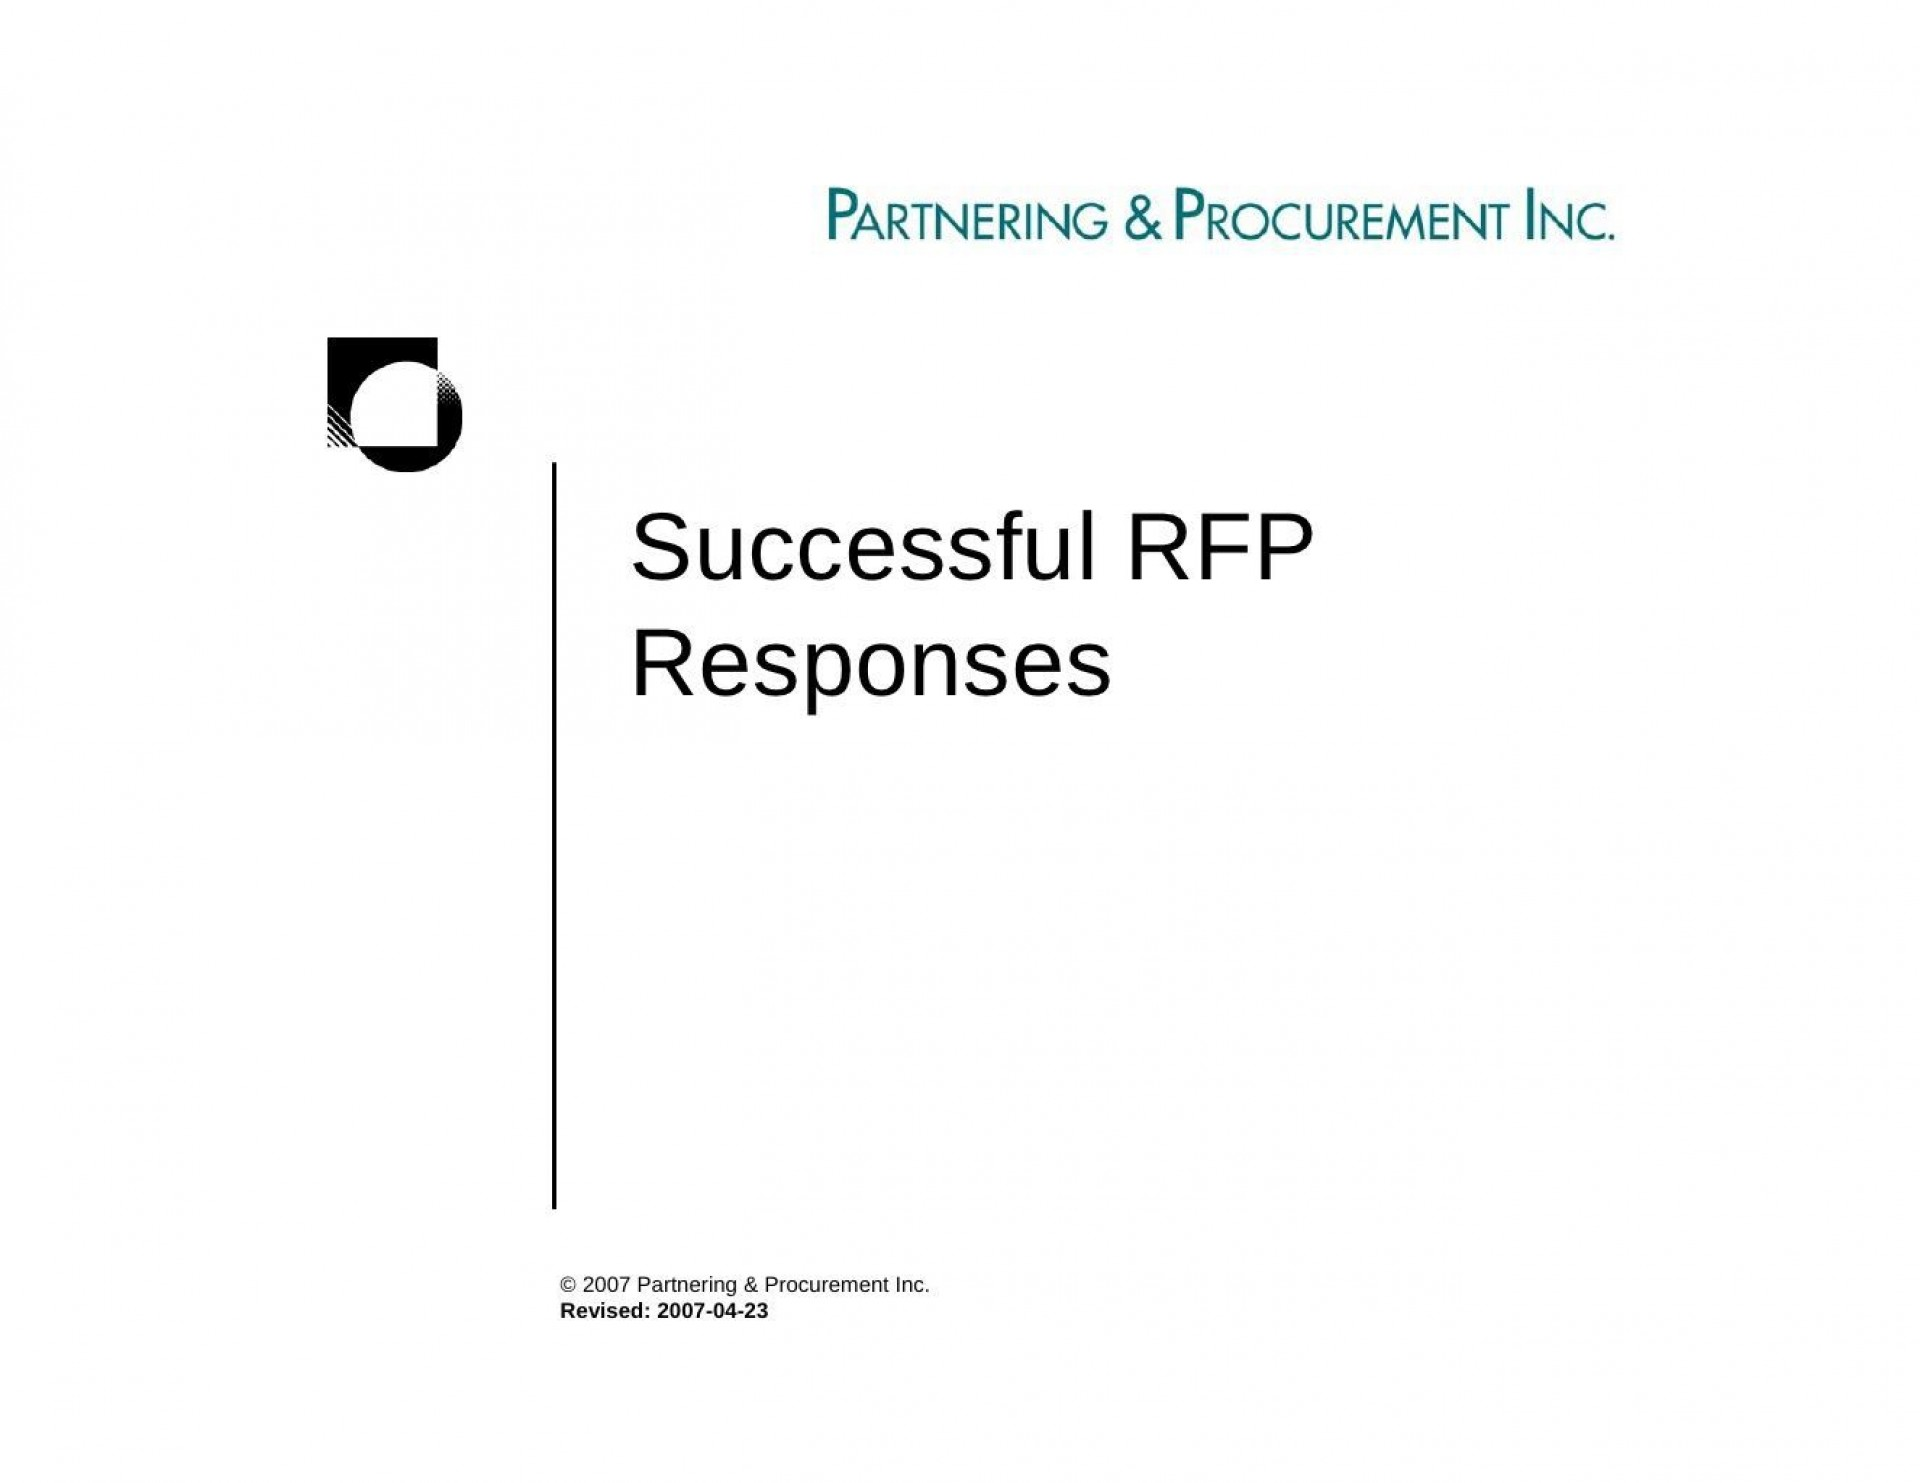 000 Impressive Request For Proposal Response Word Template Highest Quality 1920